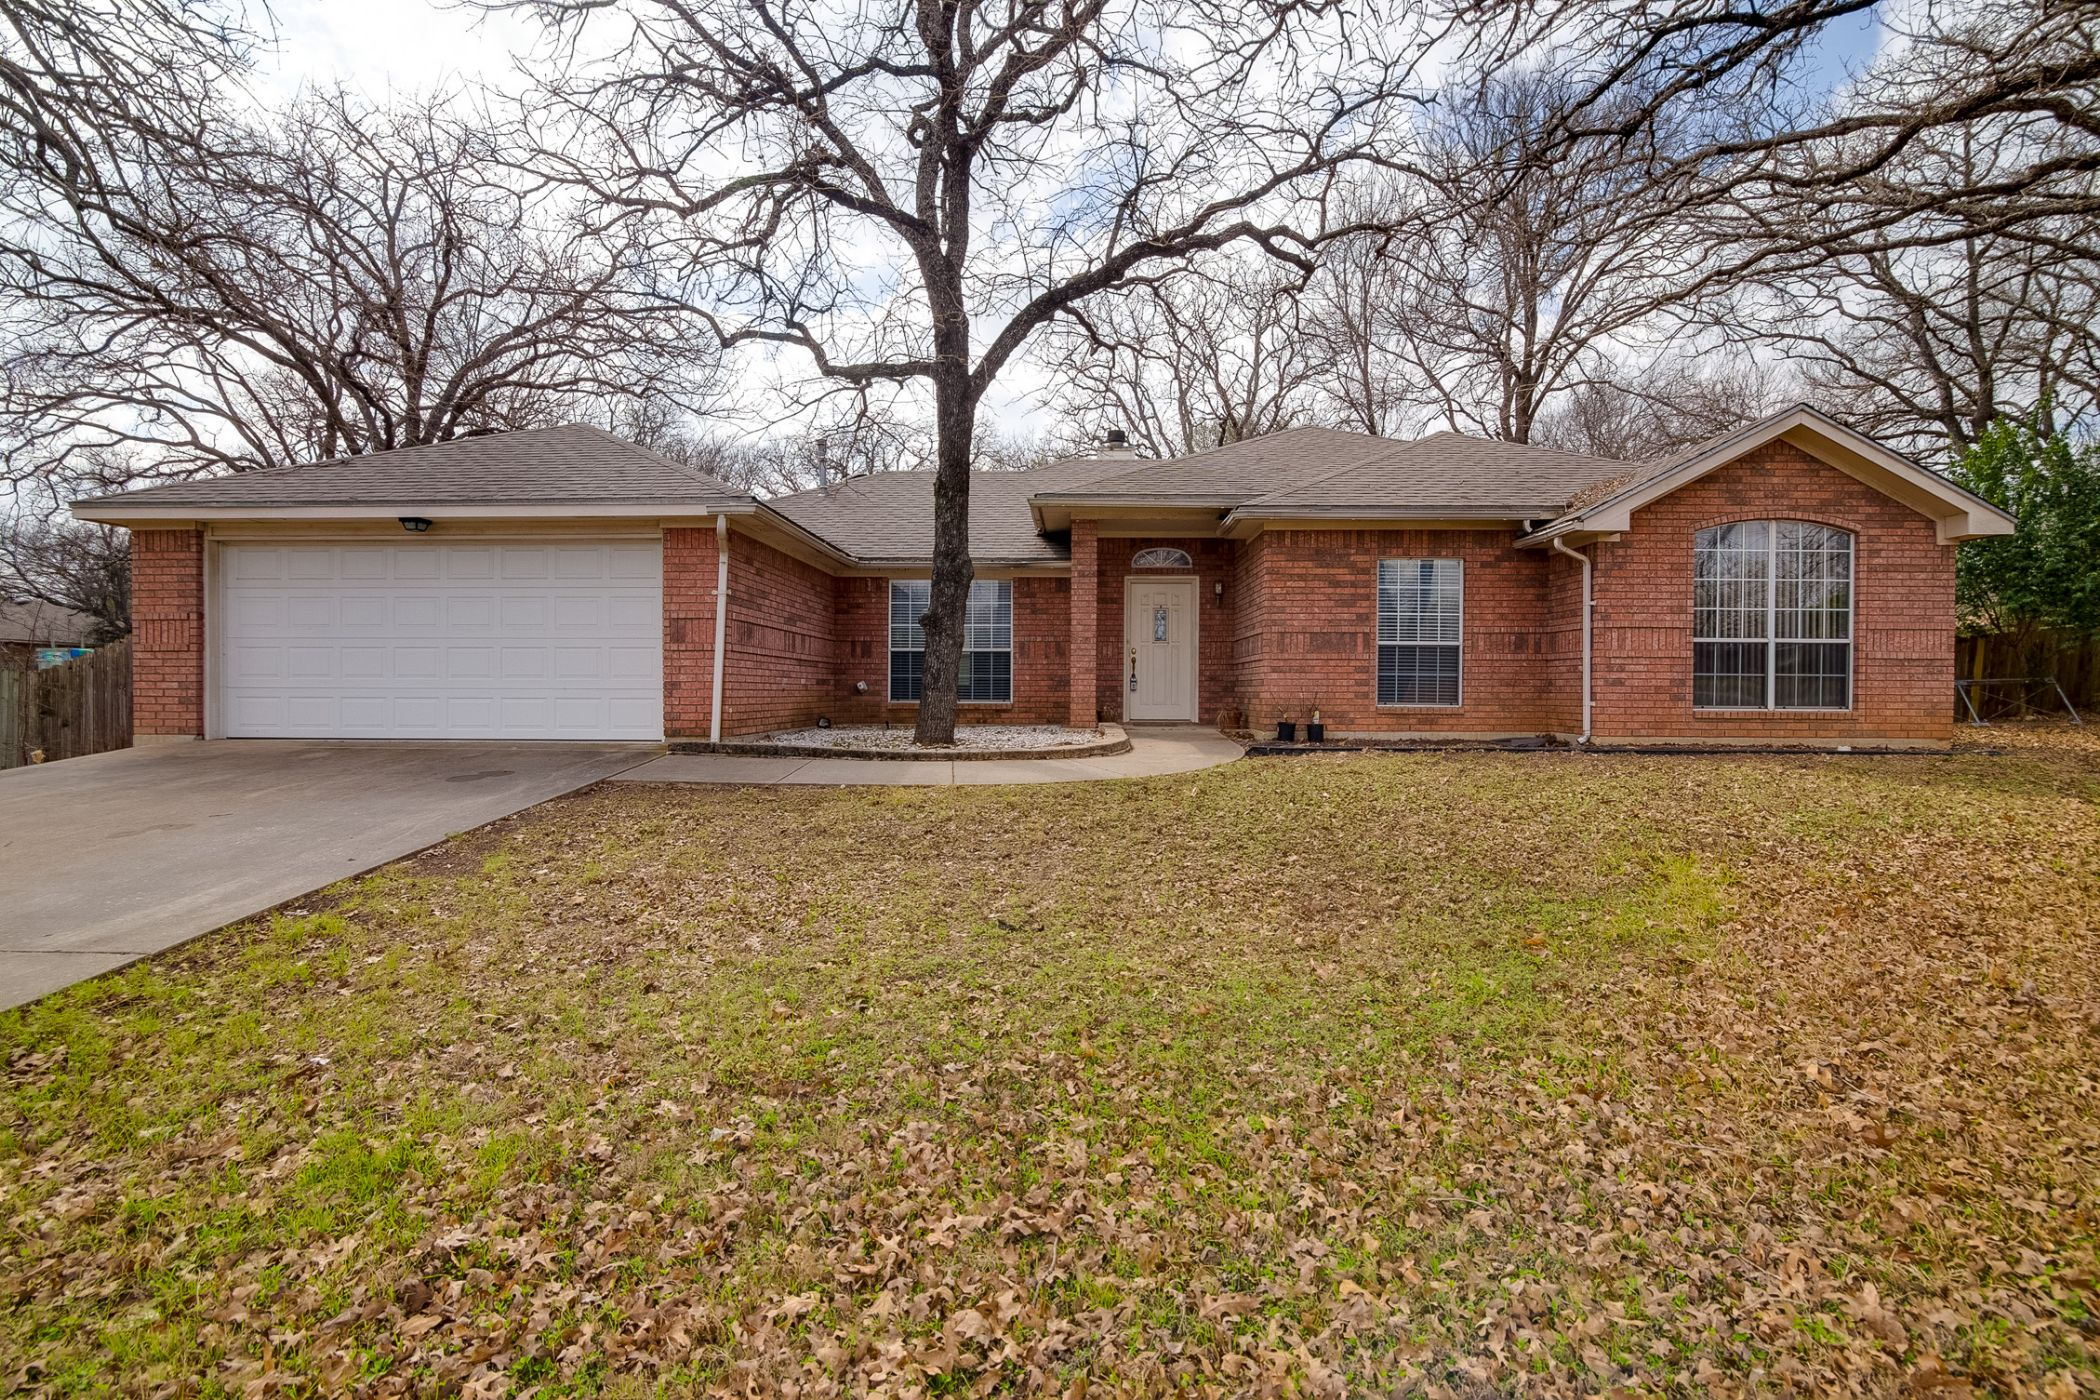 belton singles Single family home for sale in belton, tx for $389,500 with 4 bedrooms and 3 full baths this 3,282 square foot home was built in 2000 on a lot size of 0573 acre(s.